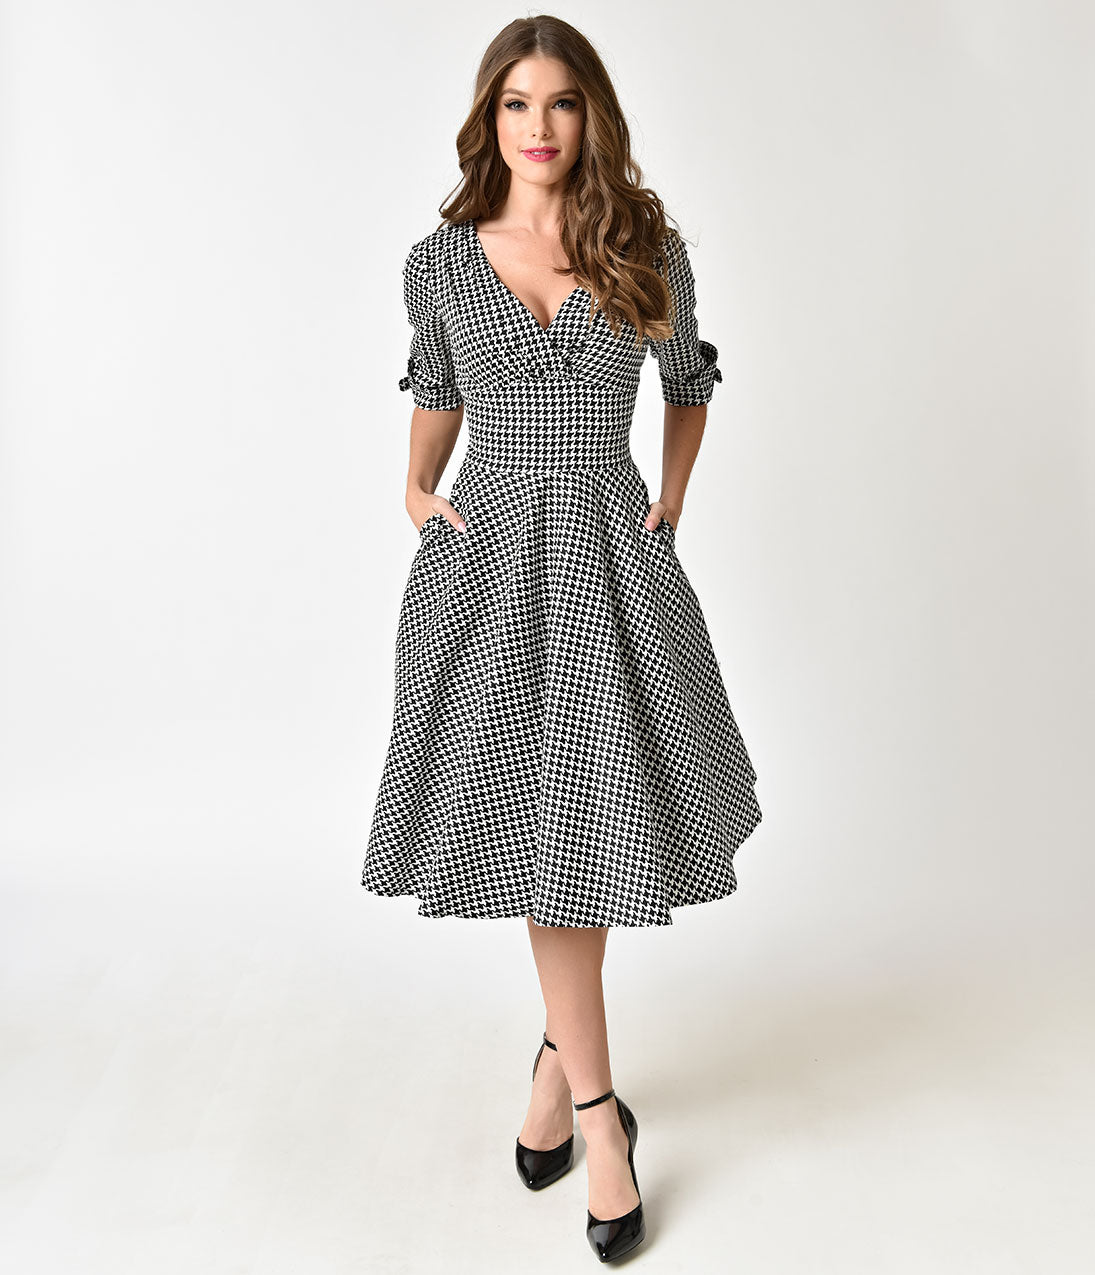 1950s Dresses, 50s Dresses | 1950s Style Dresses Unique Vintage 1950S Black  White Houndstooth Delores Swing Dress With Sleeves $98.00 AT vintagedancer.com